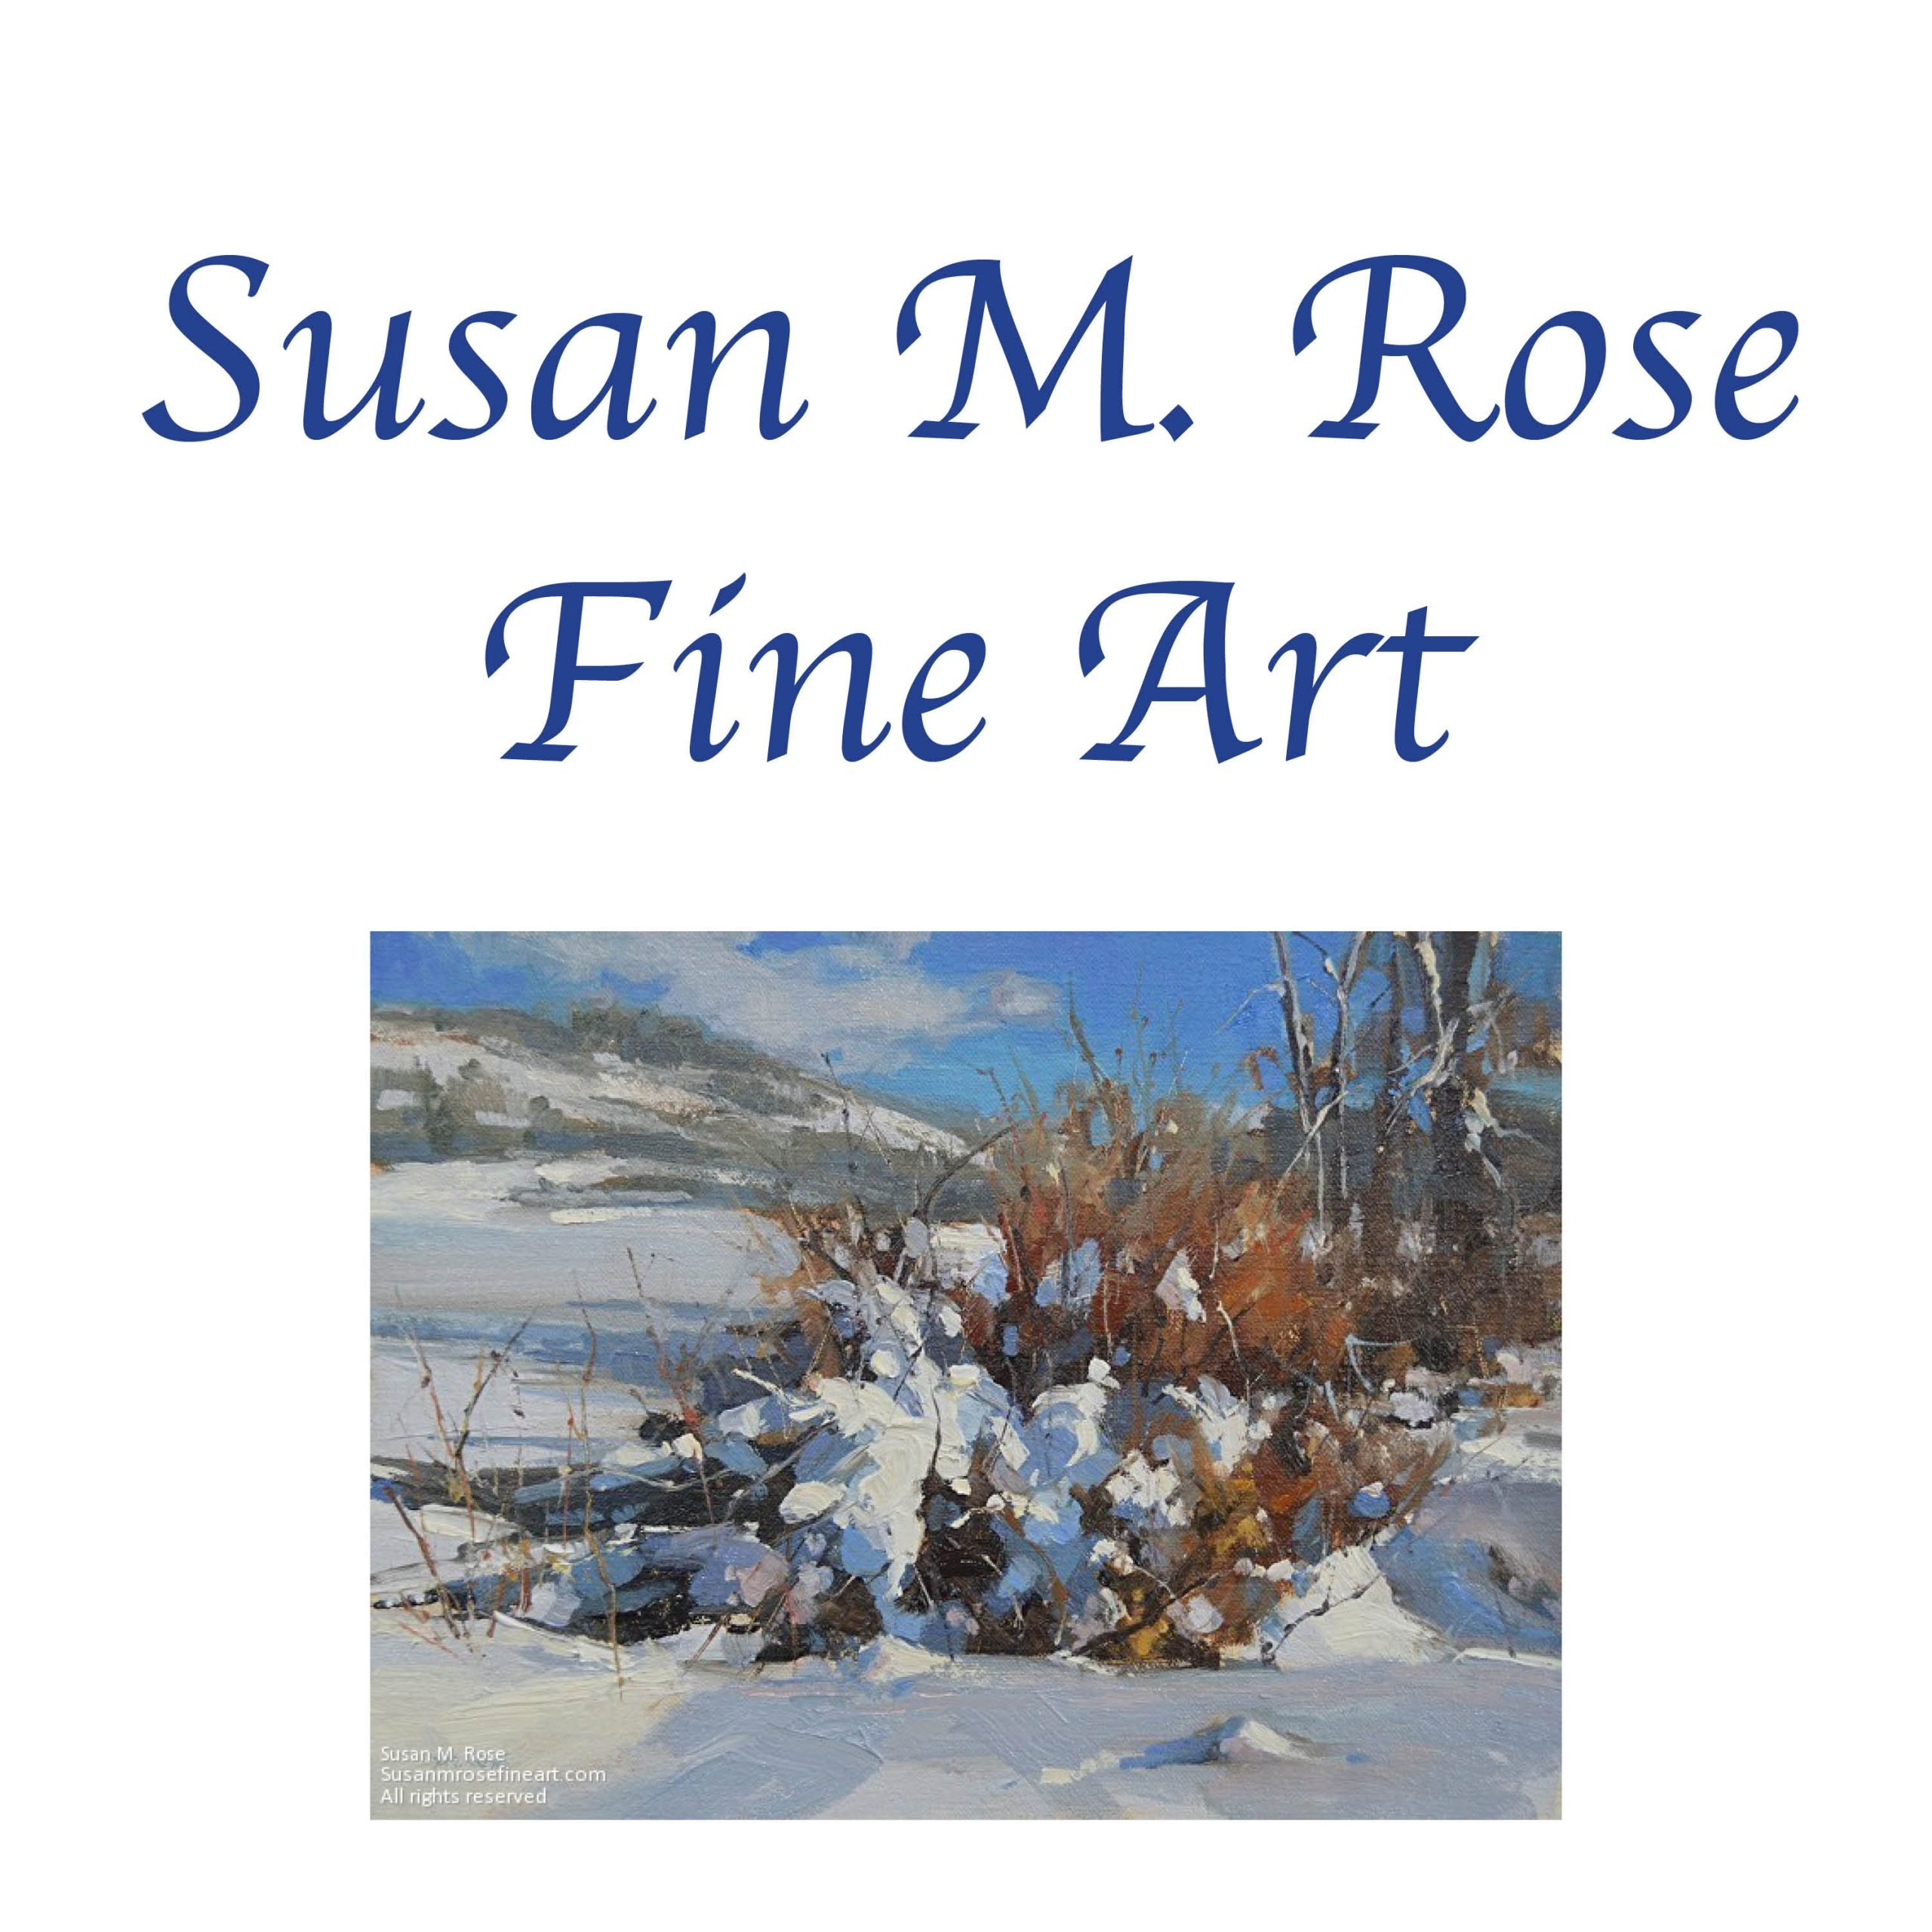 Susan M. Rose Fine Art